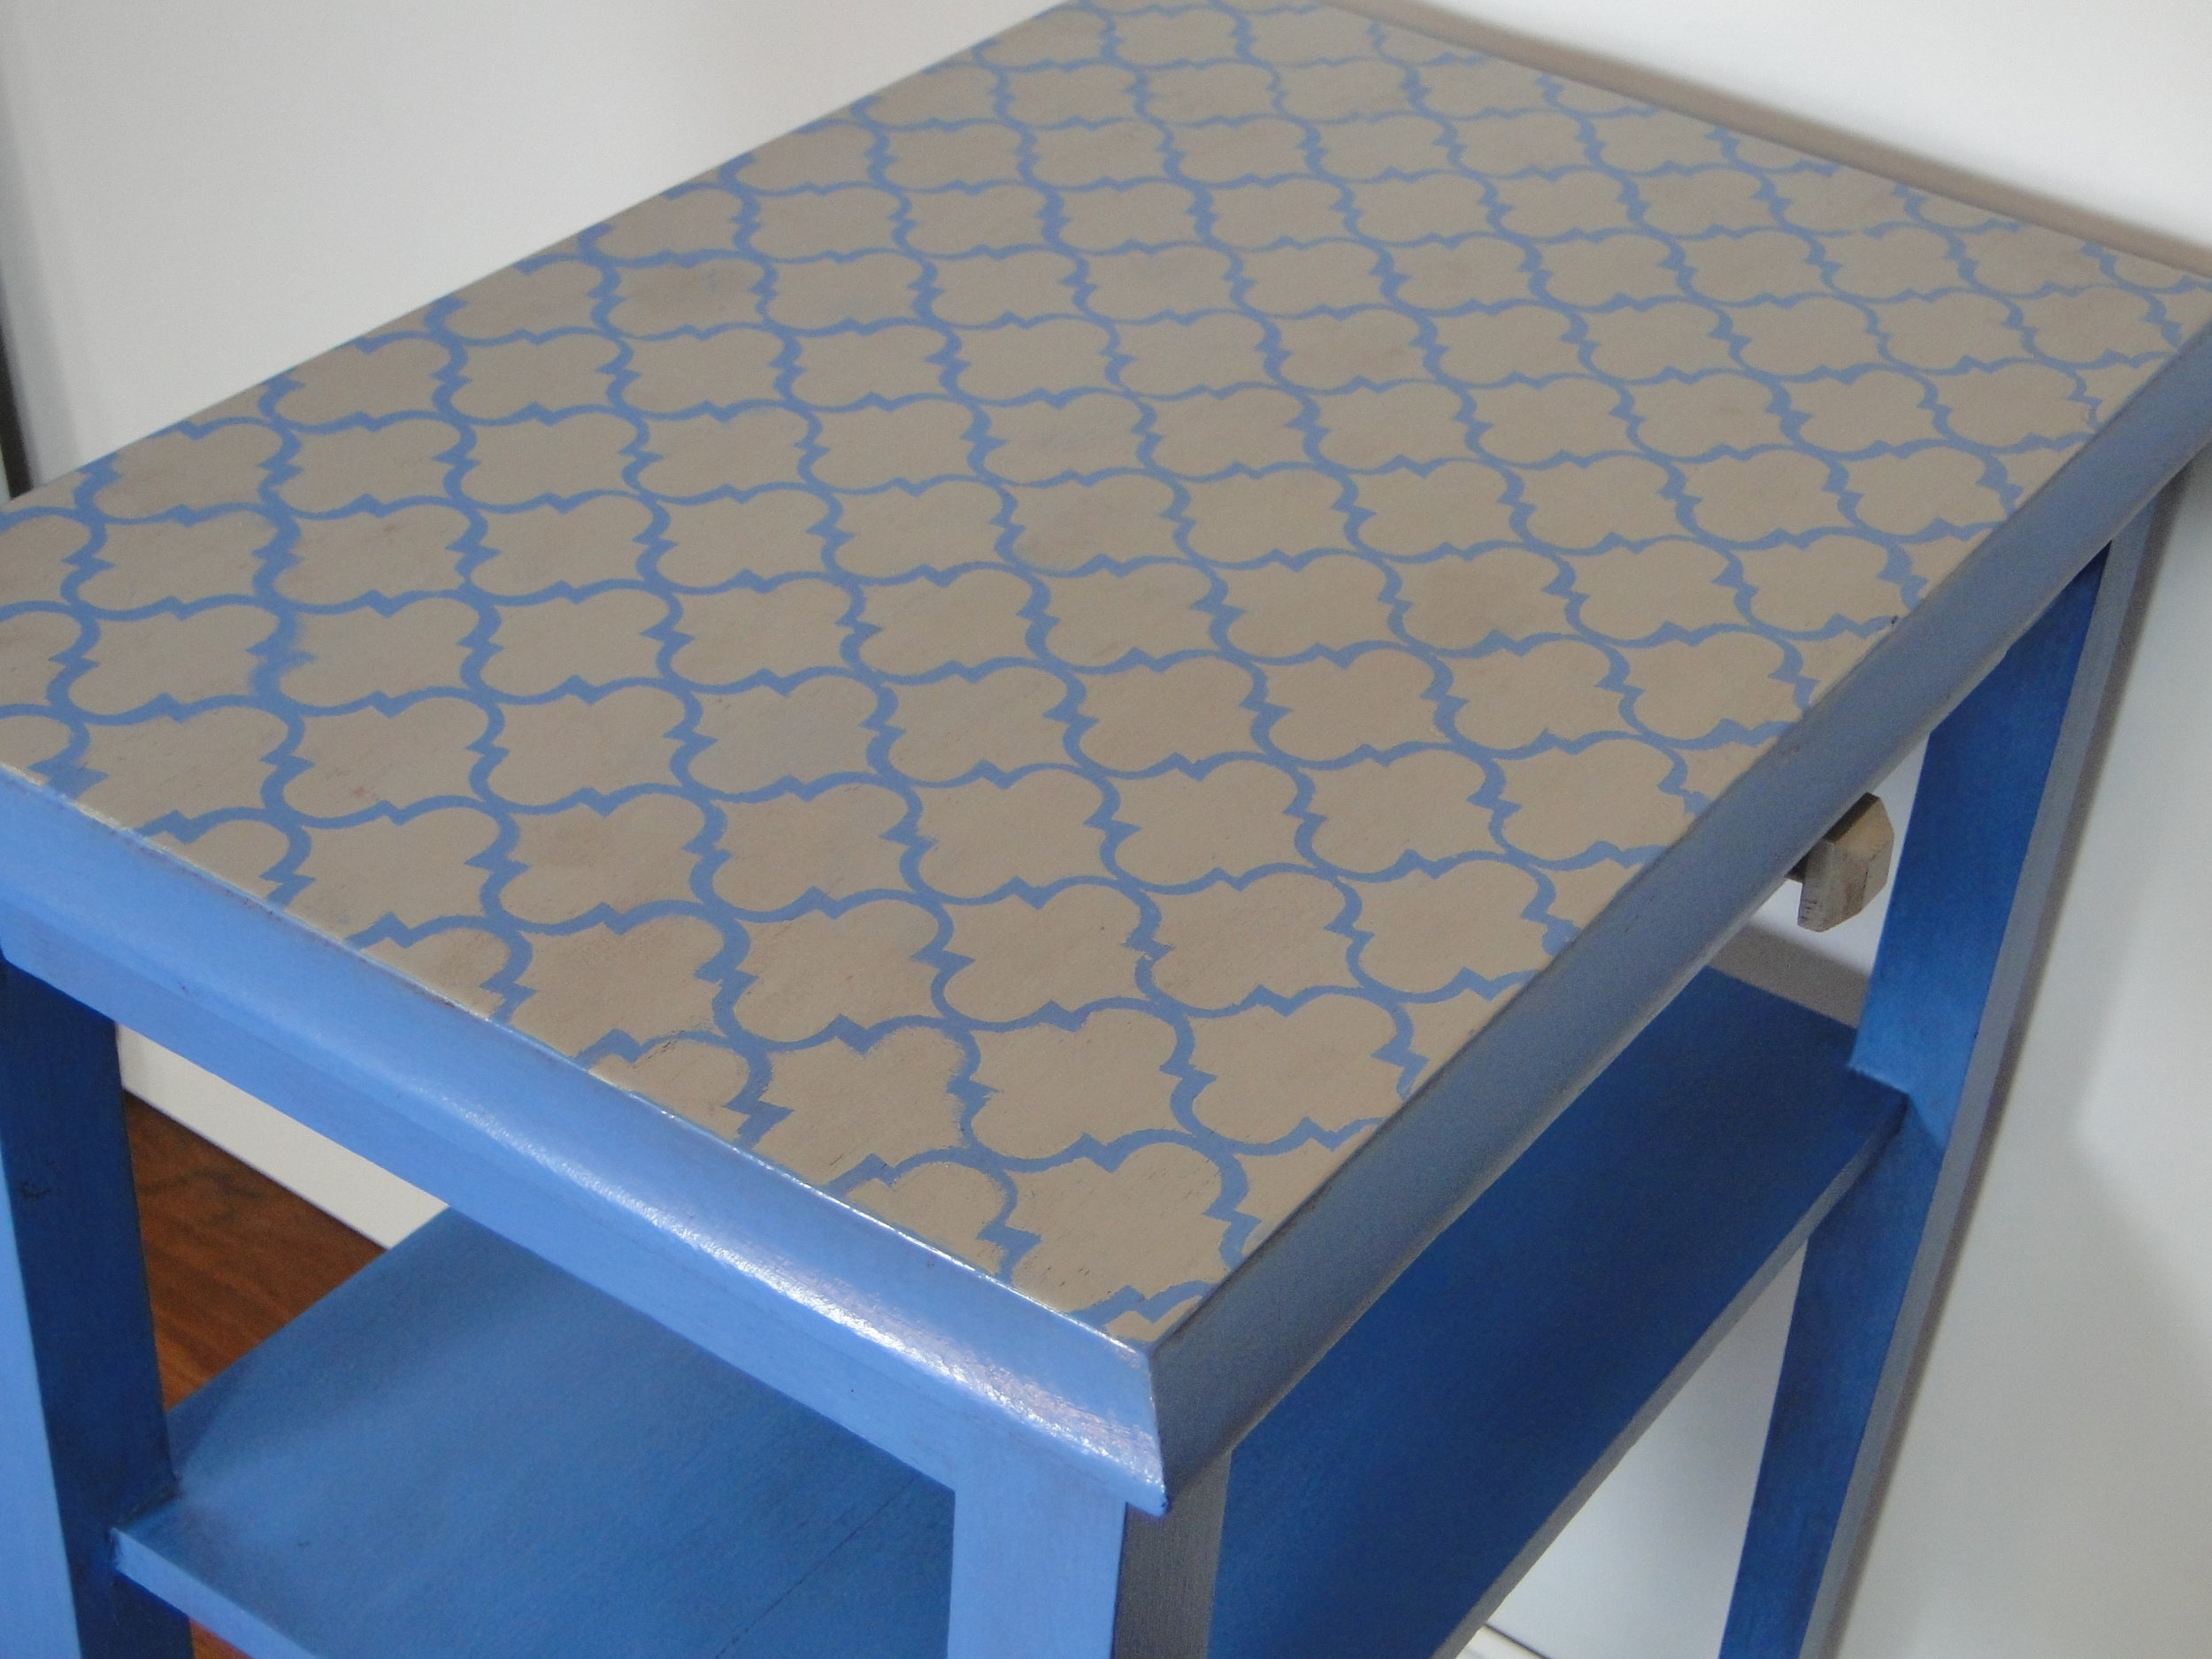 View of top of table with grey & blue stenciled design